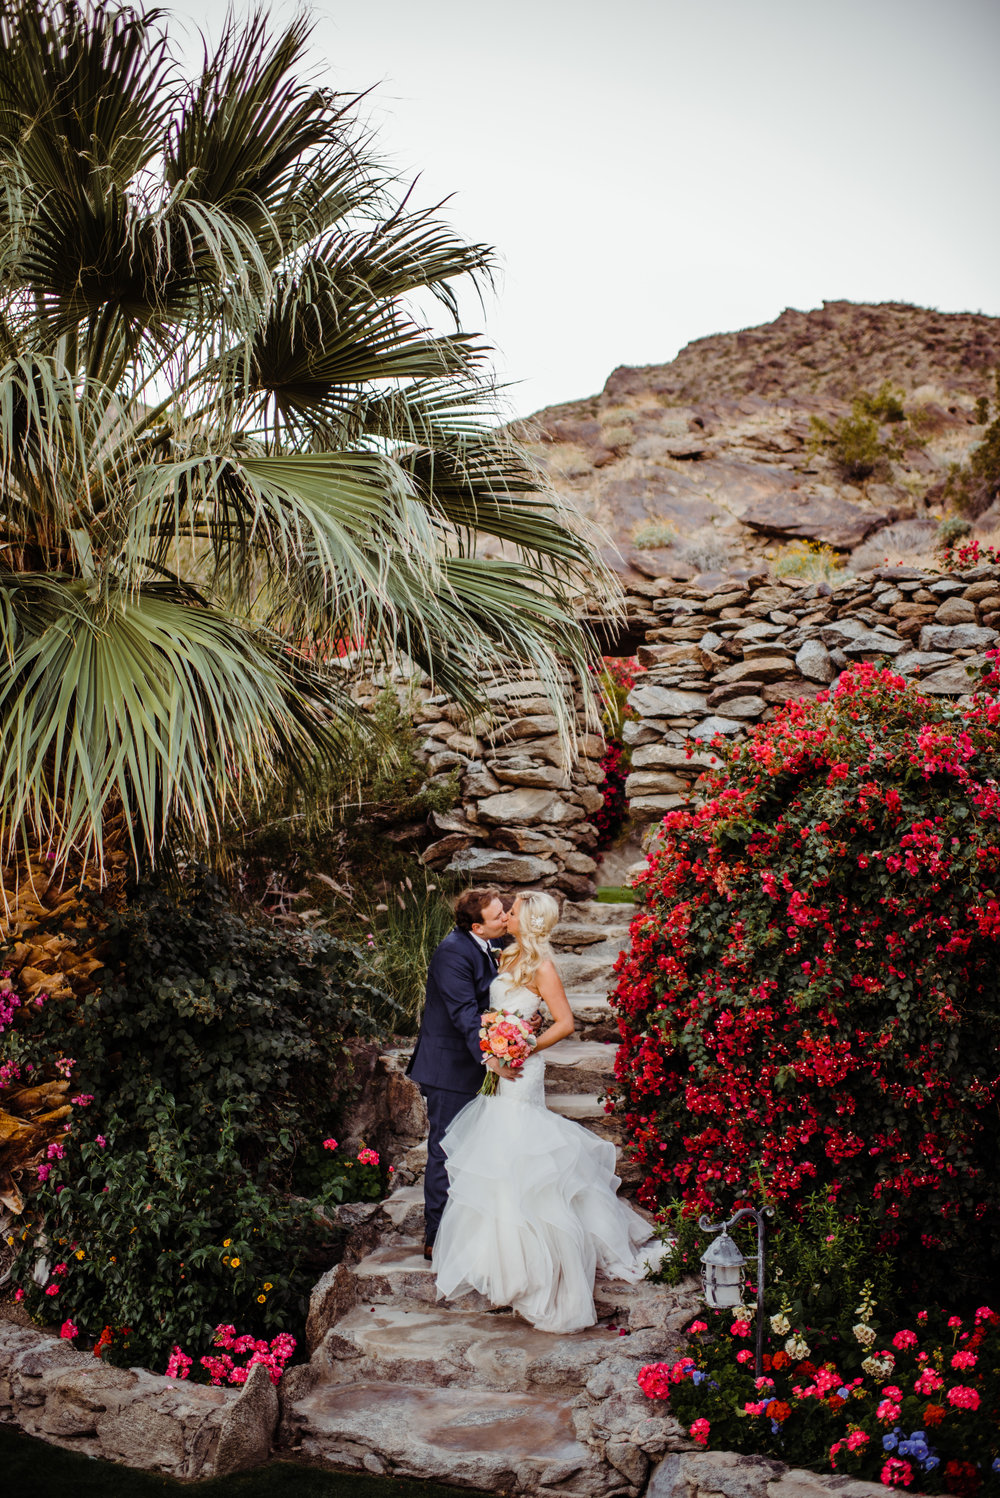 Summer Palm Springs Wedding - O'Donnell House, Palm Springs